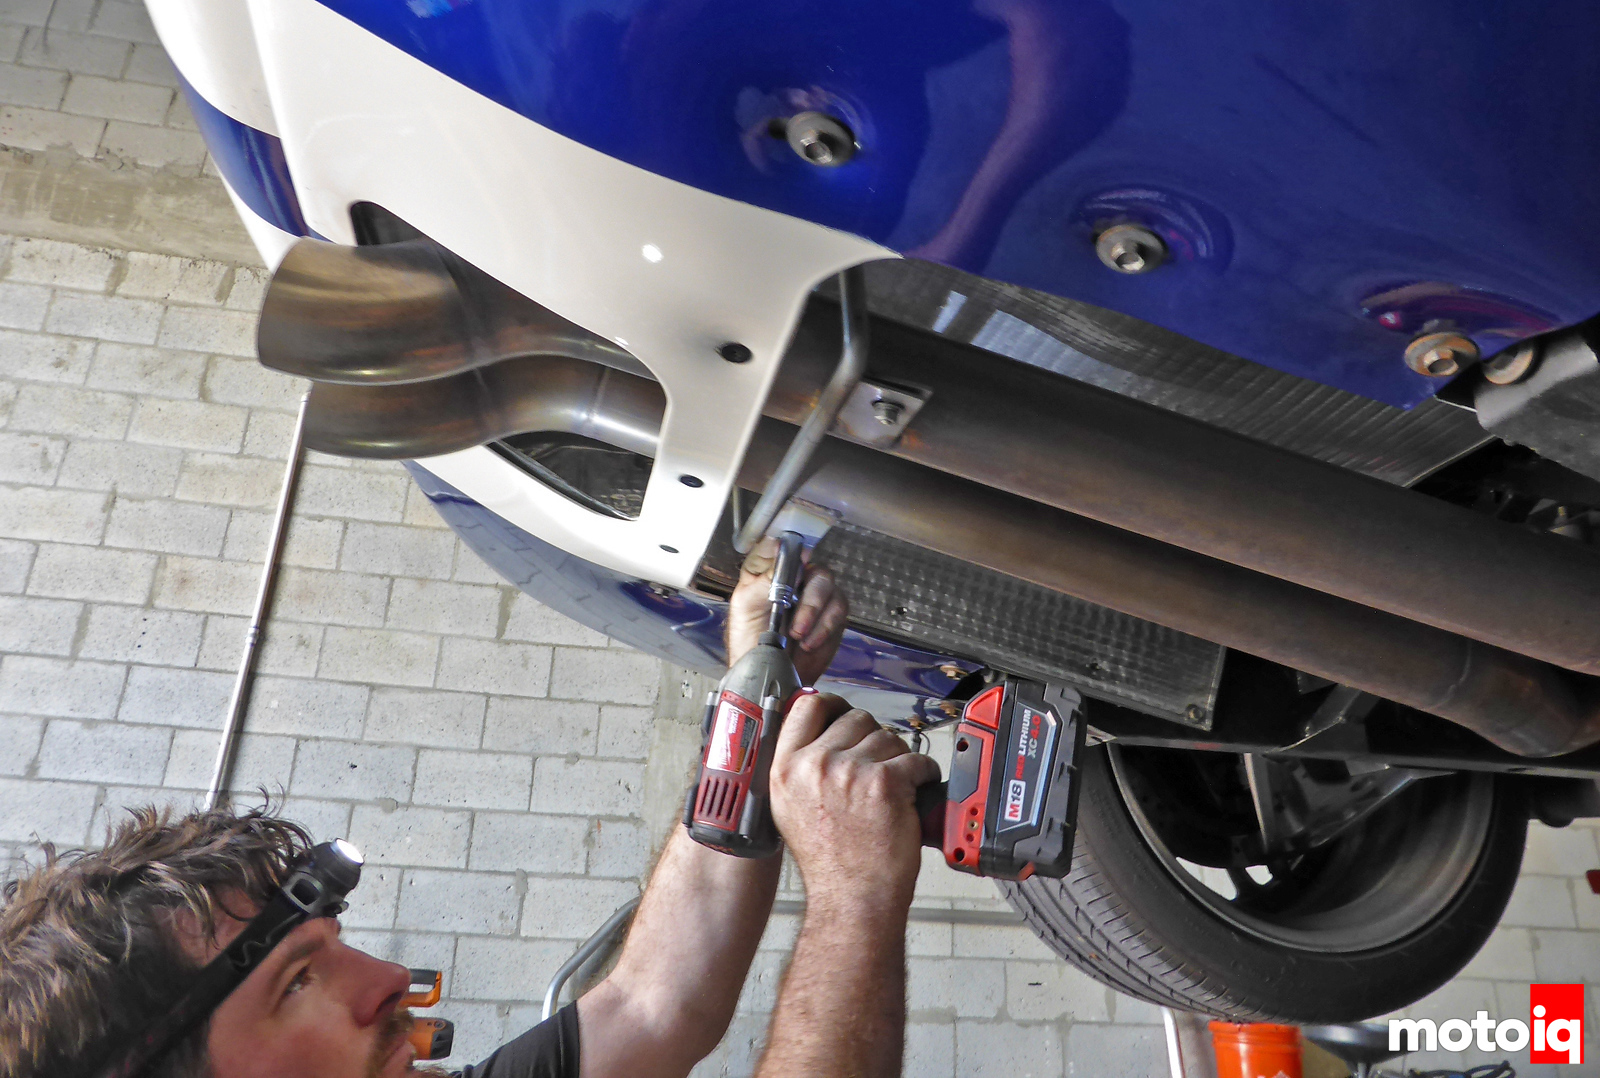 Viper GTS Rear Exhaust Removal